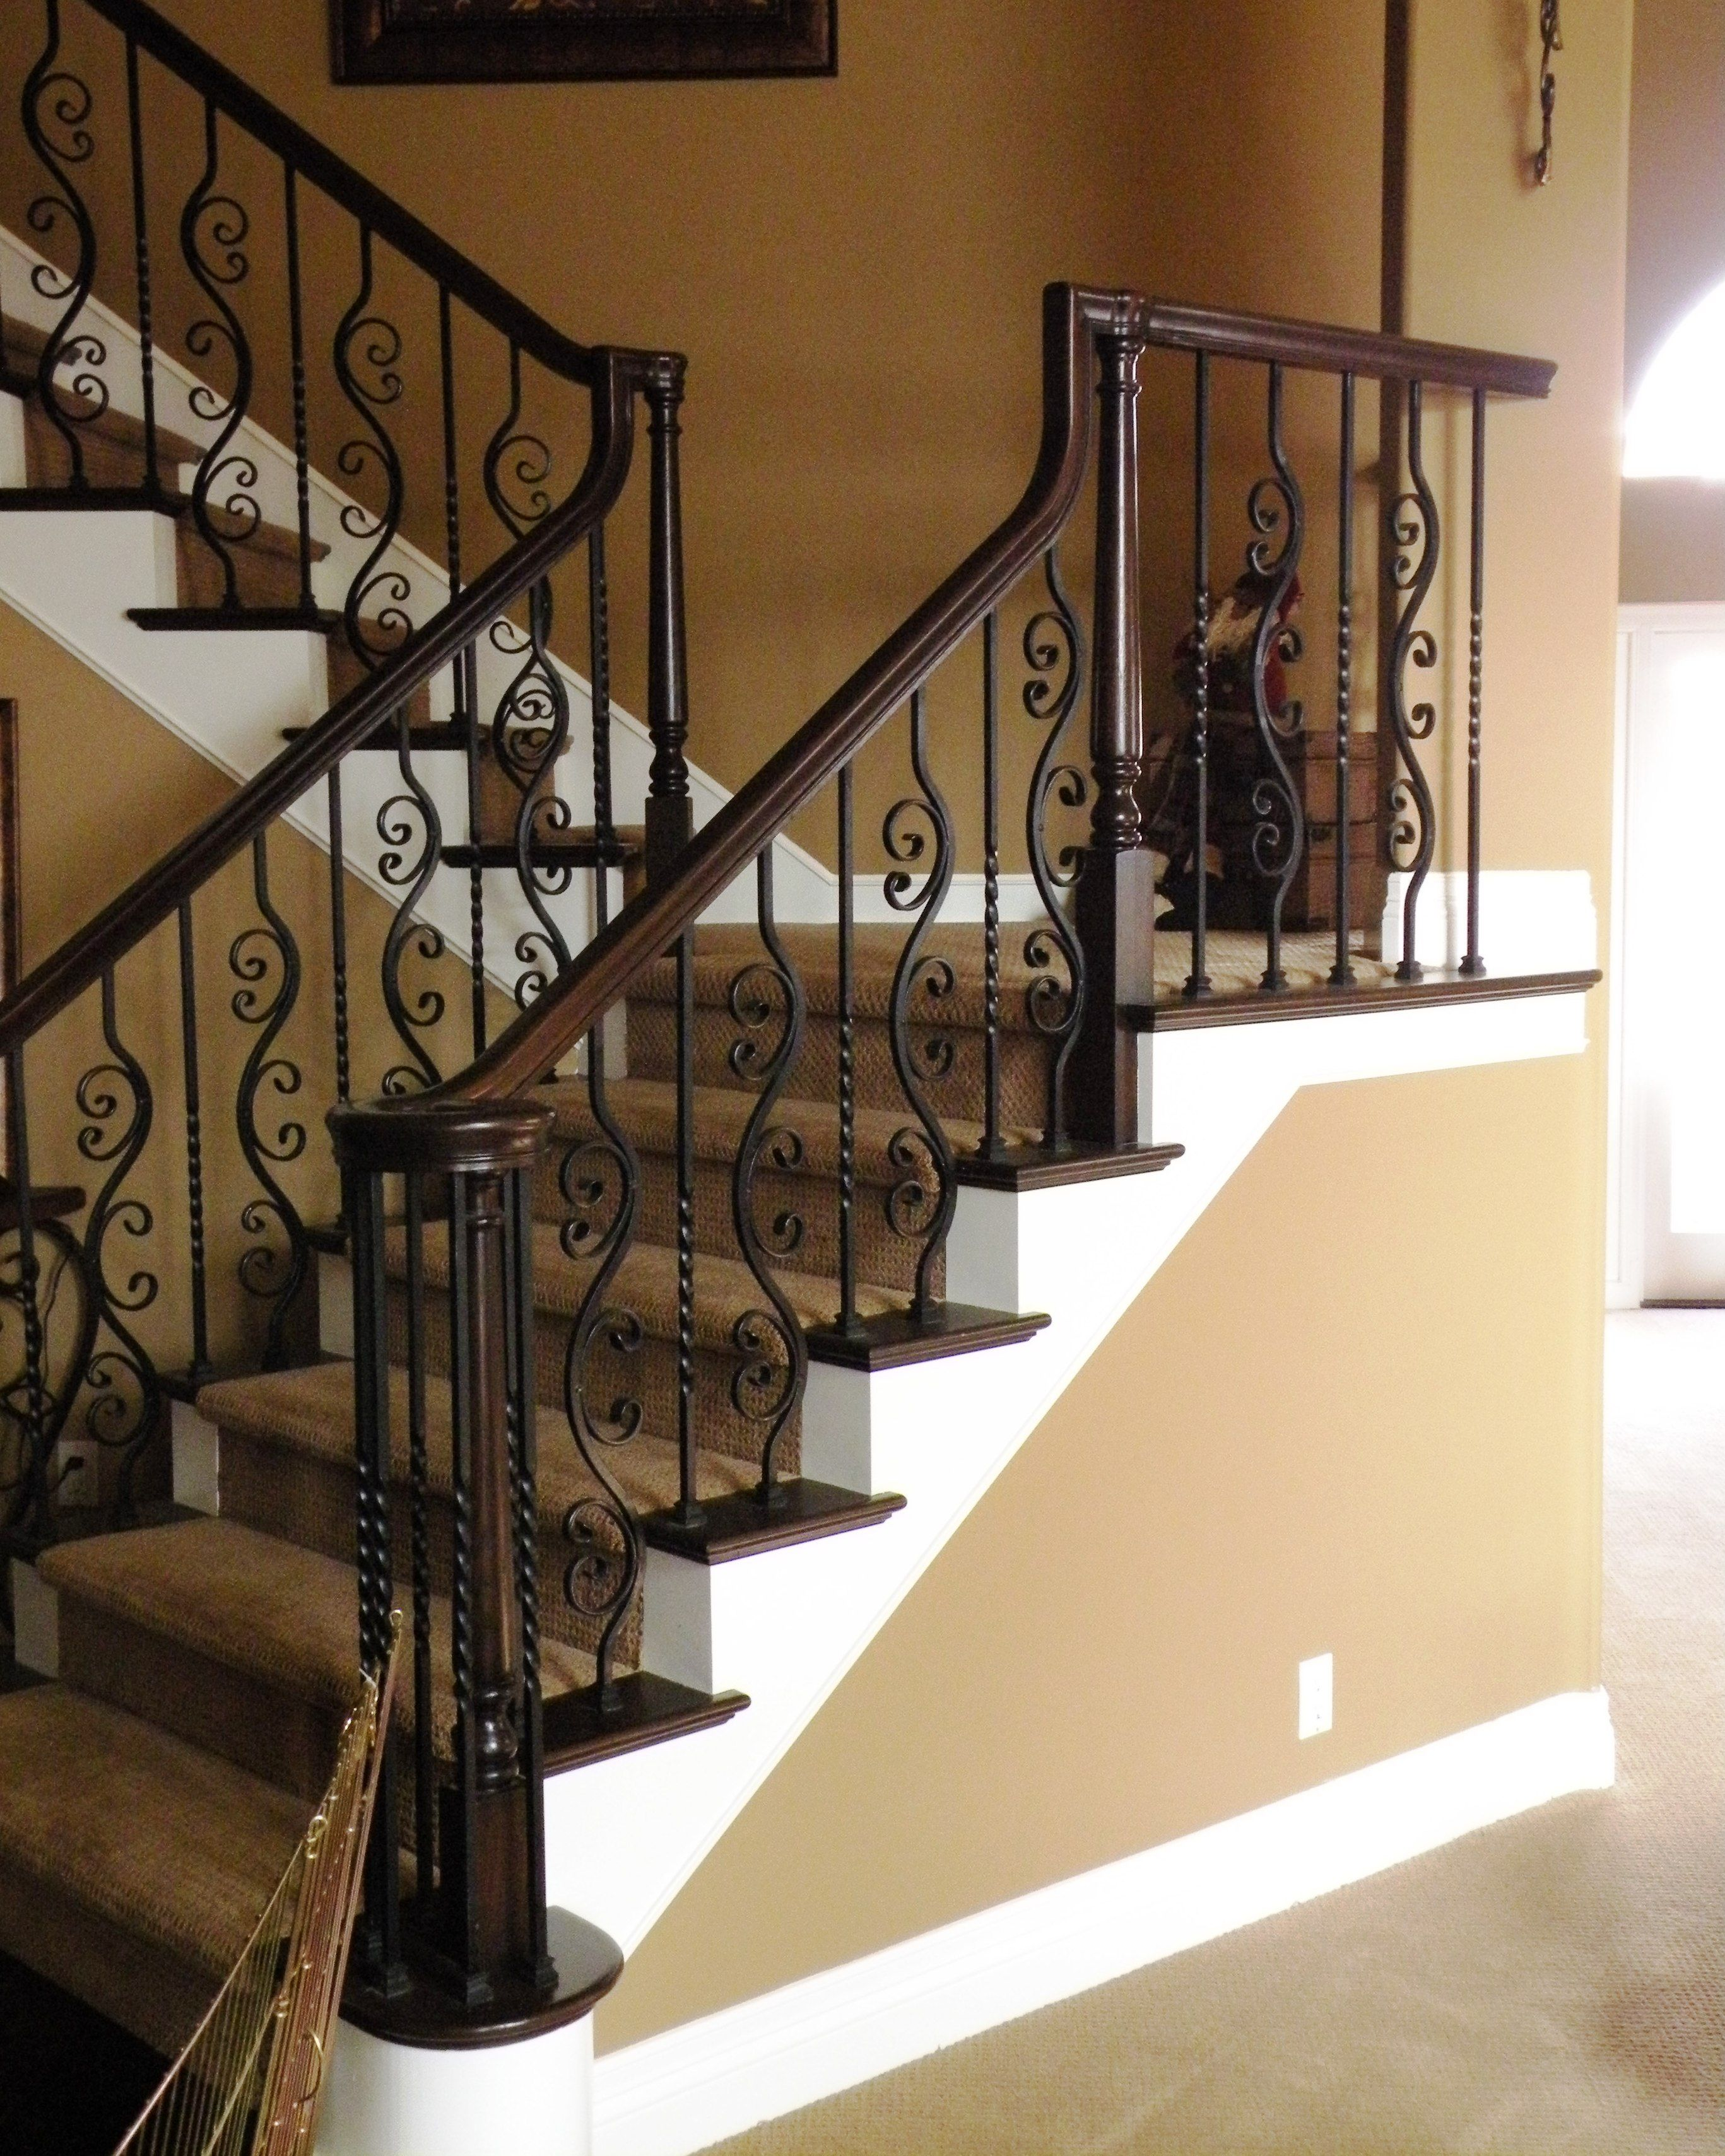 very similar stairwell look if we changed the wrought iron banisters to black